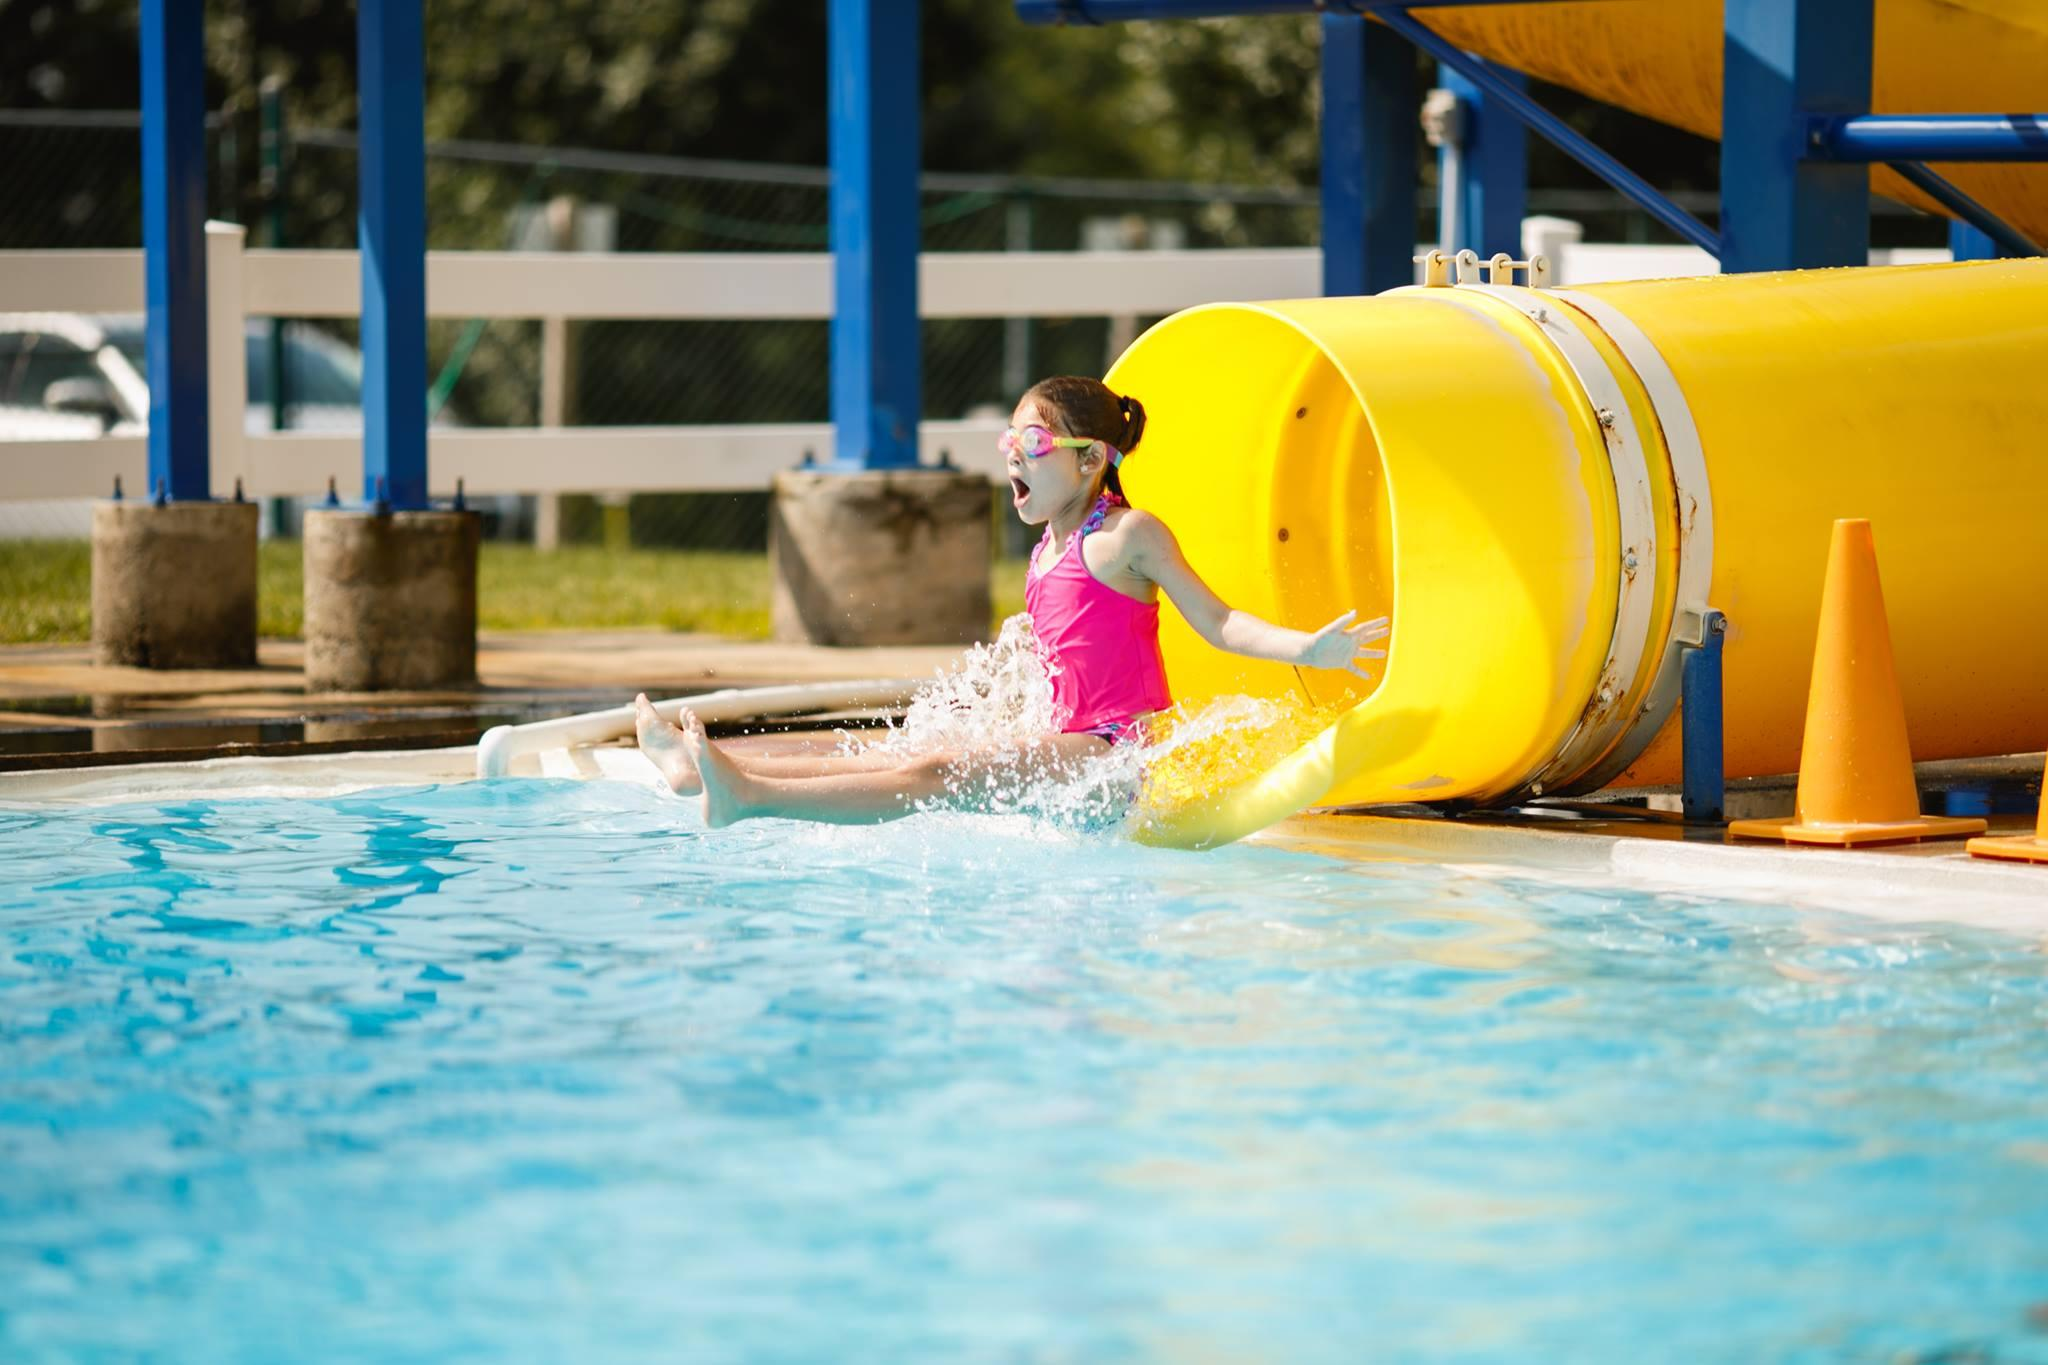 A camper at Brandywine YMCA summer camp goes down the outdoor swimming pool water slide during camp swim time.